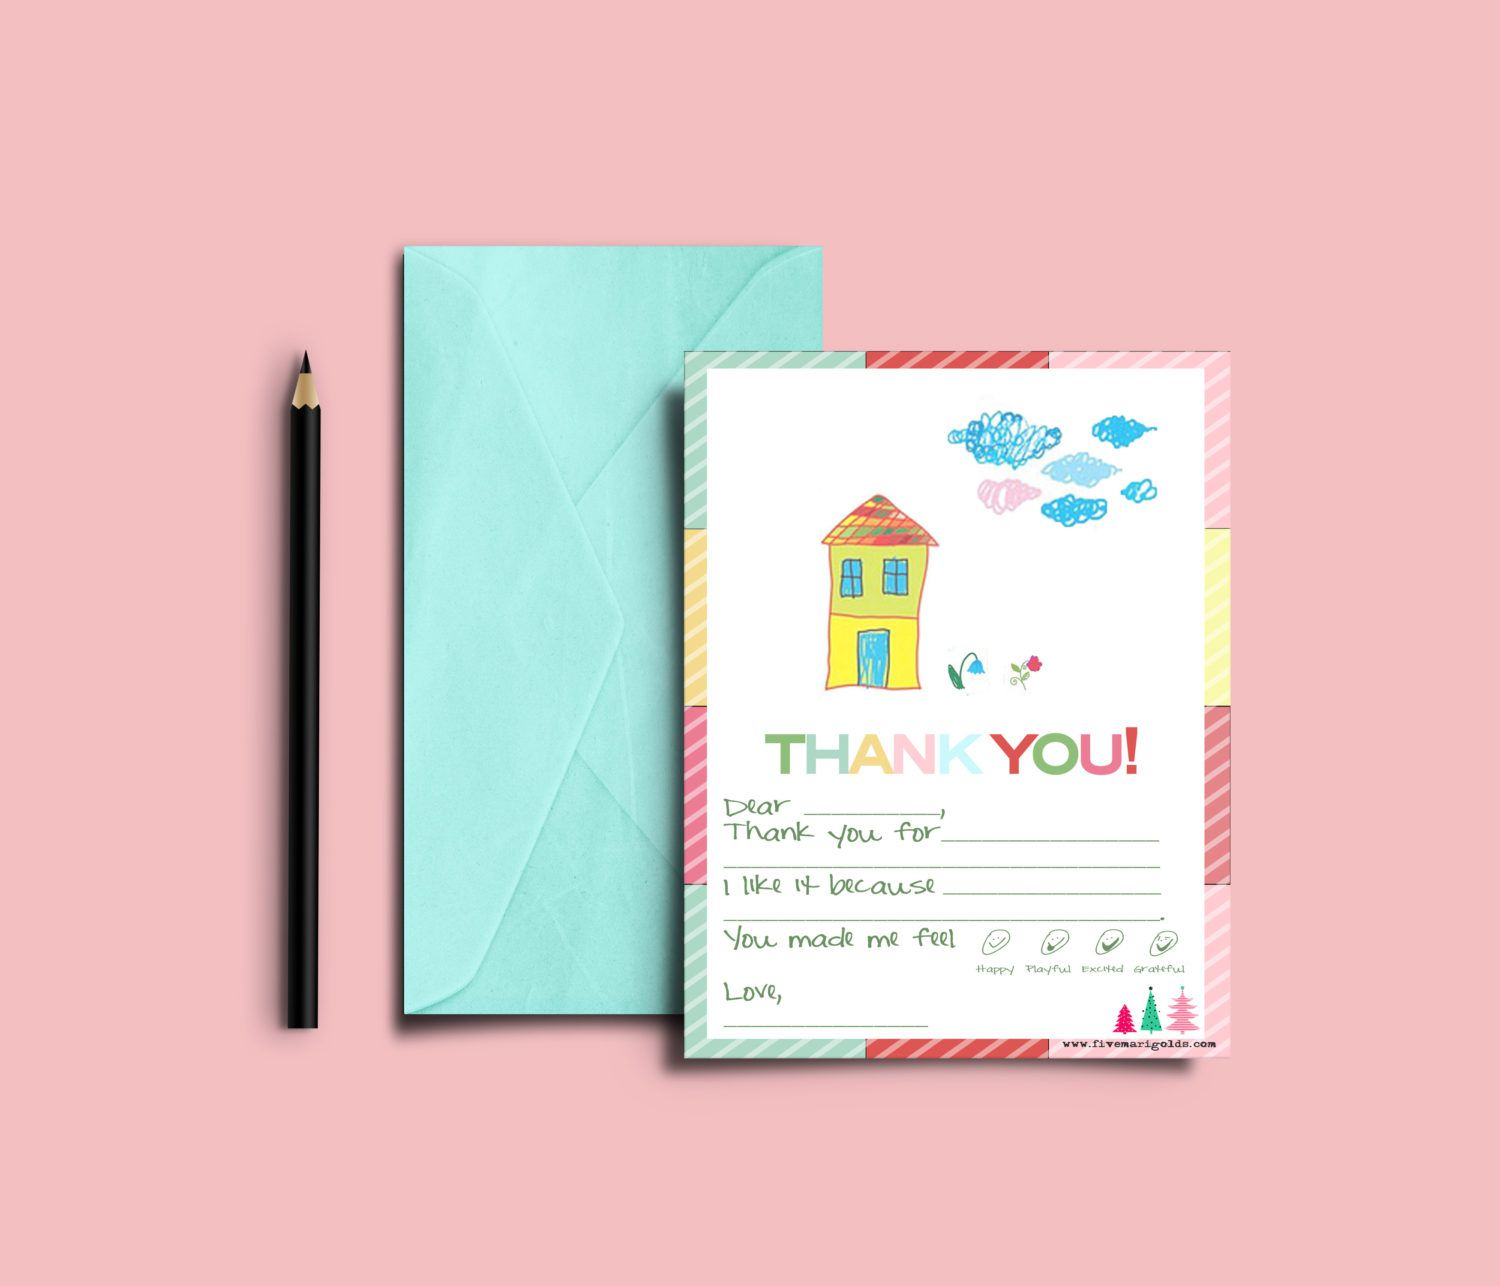 003 Rare Thank You Note Template For Kid Example  Kids Child Pdf LetterFull